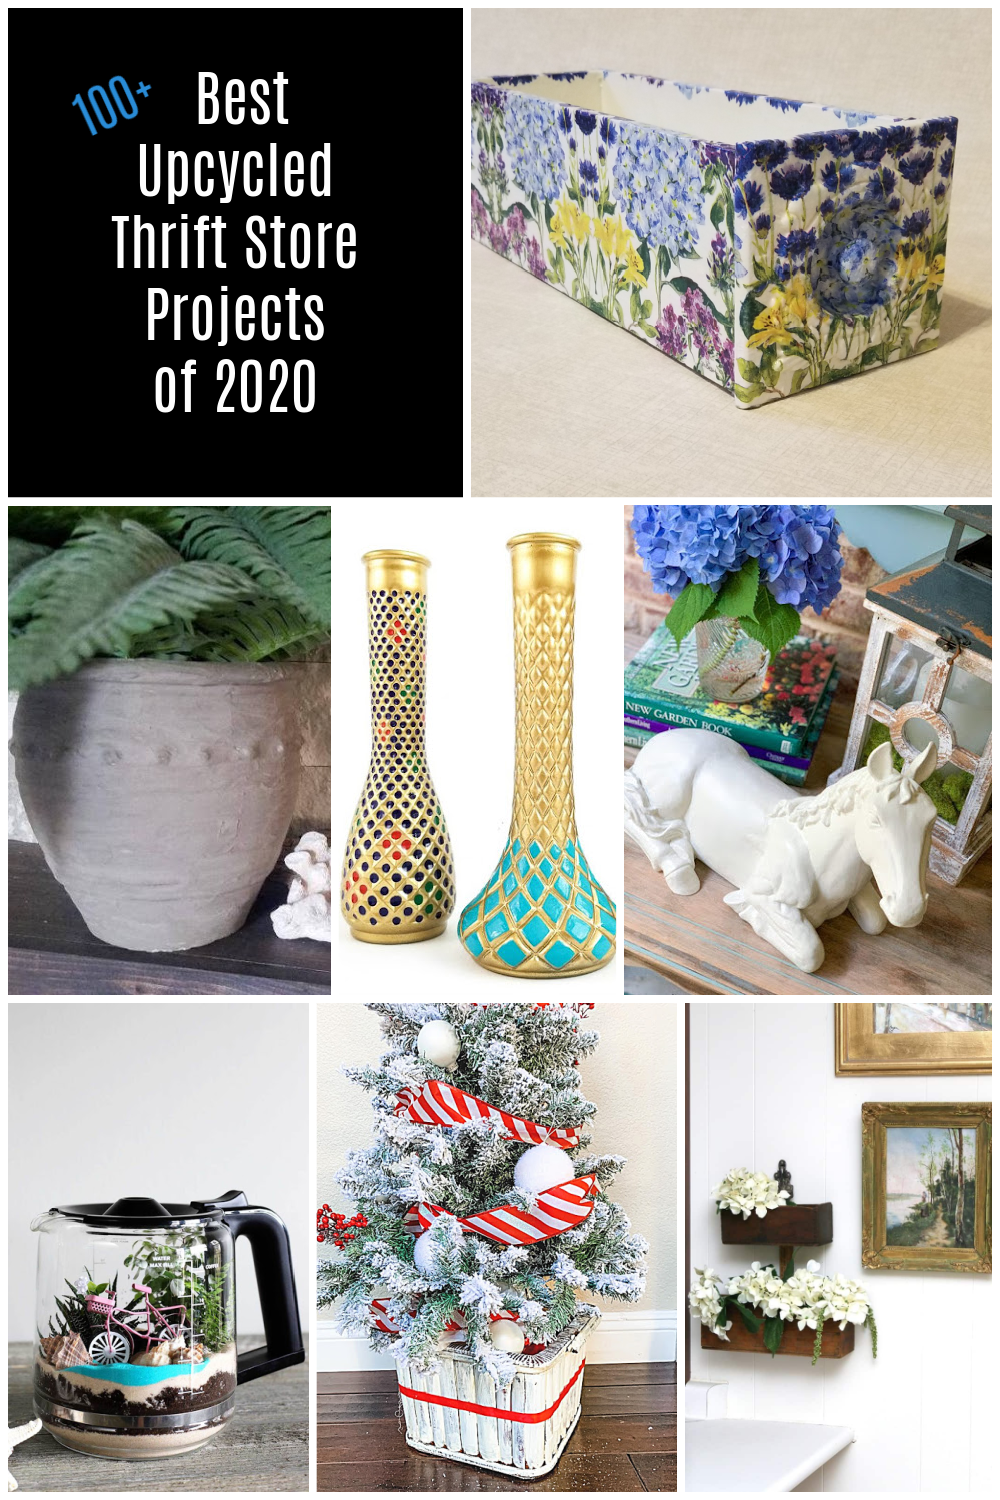 A fabulous collection of 100 upcycled thrift store ideas awaits right here to inspire you. You probably already have many items at your home. #MyRepurposedLife #repurposed #thrift #thriftstore #diy #projects via @repurposedlife